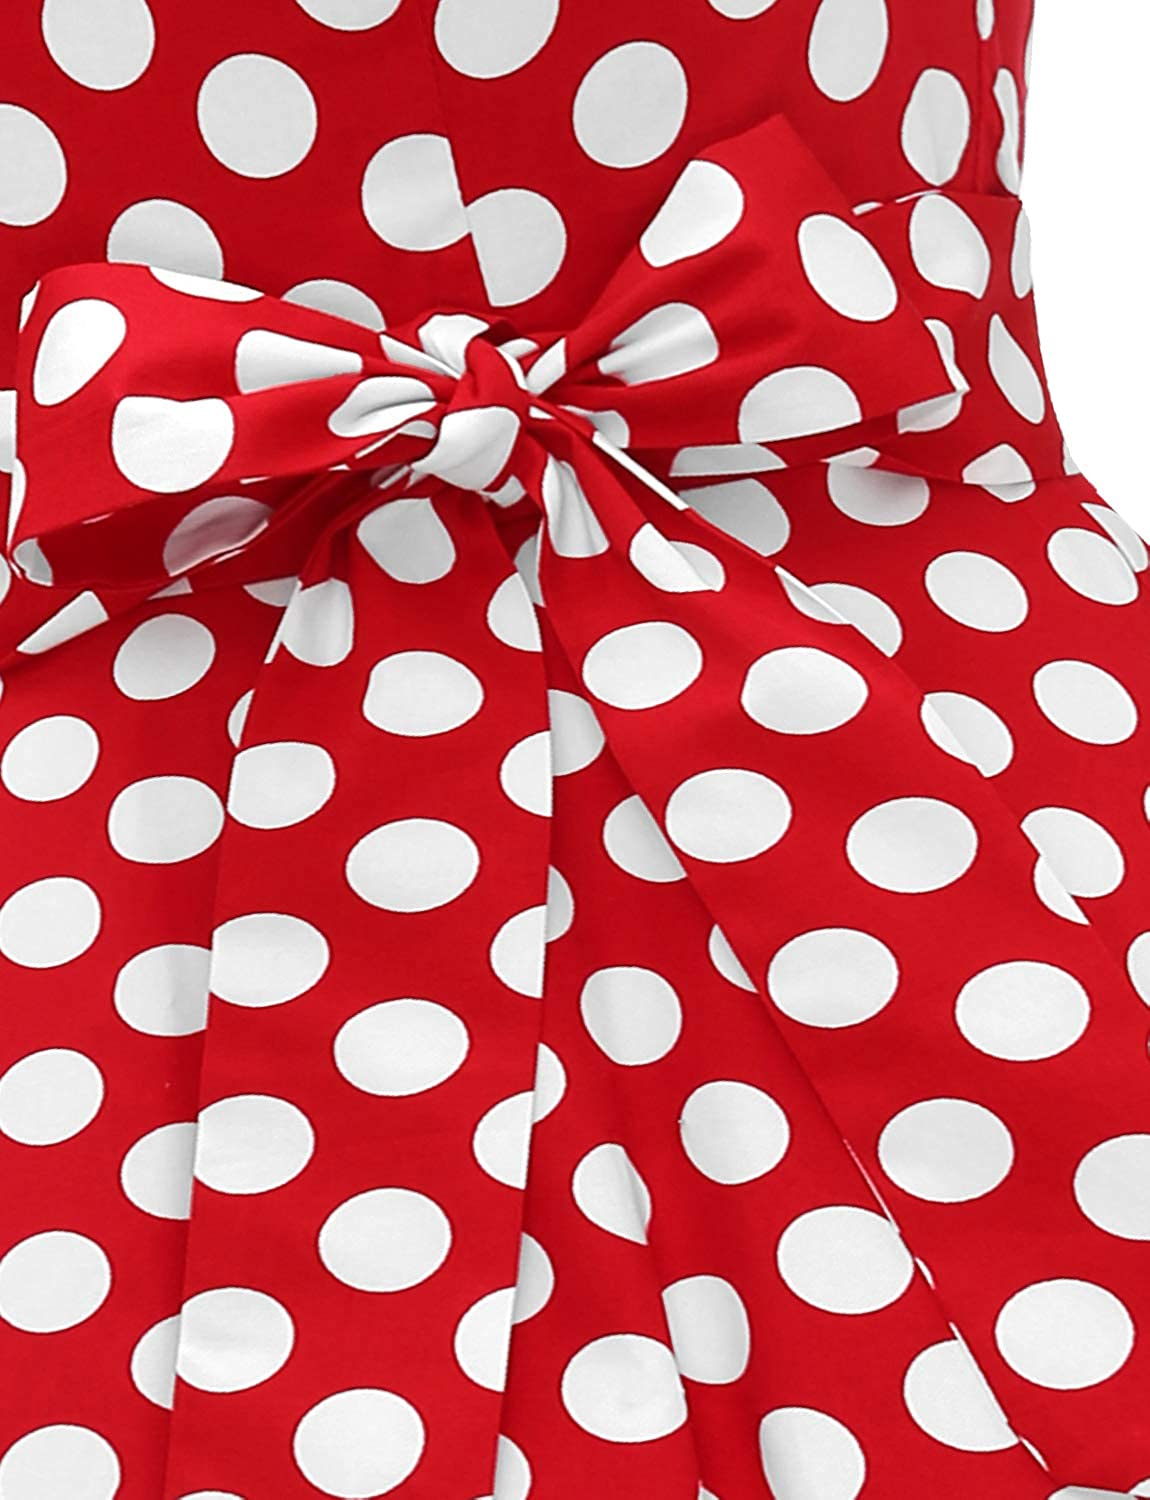 Dressystar Vintage 1950s Polka Dot and Solid Color Prom Dresses Cap-Sleeve